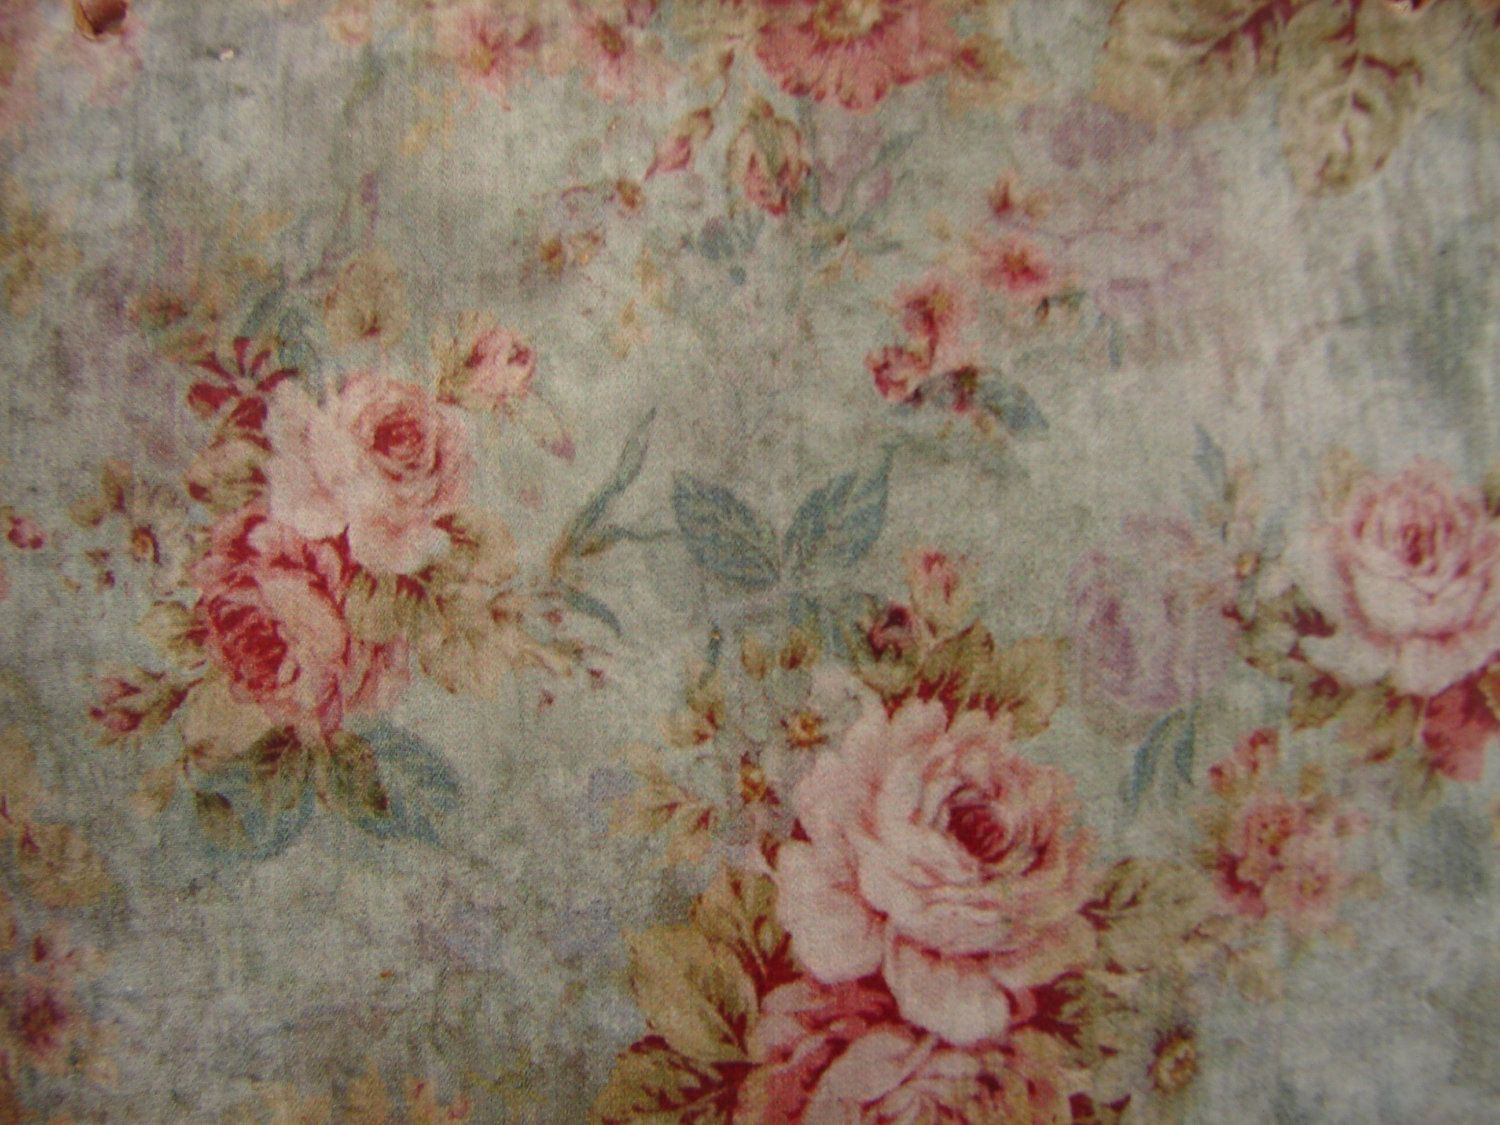 vintage floral wallpaper image french shabby chic pink roses large wooden tag dresser door. Black Bedroom Furniture Sets. Home Design Ideas